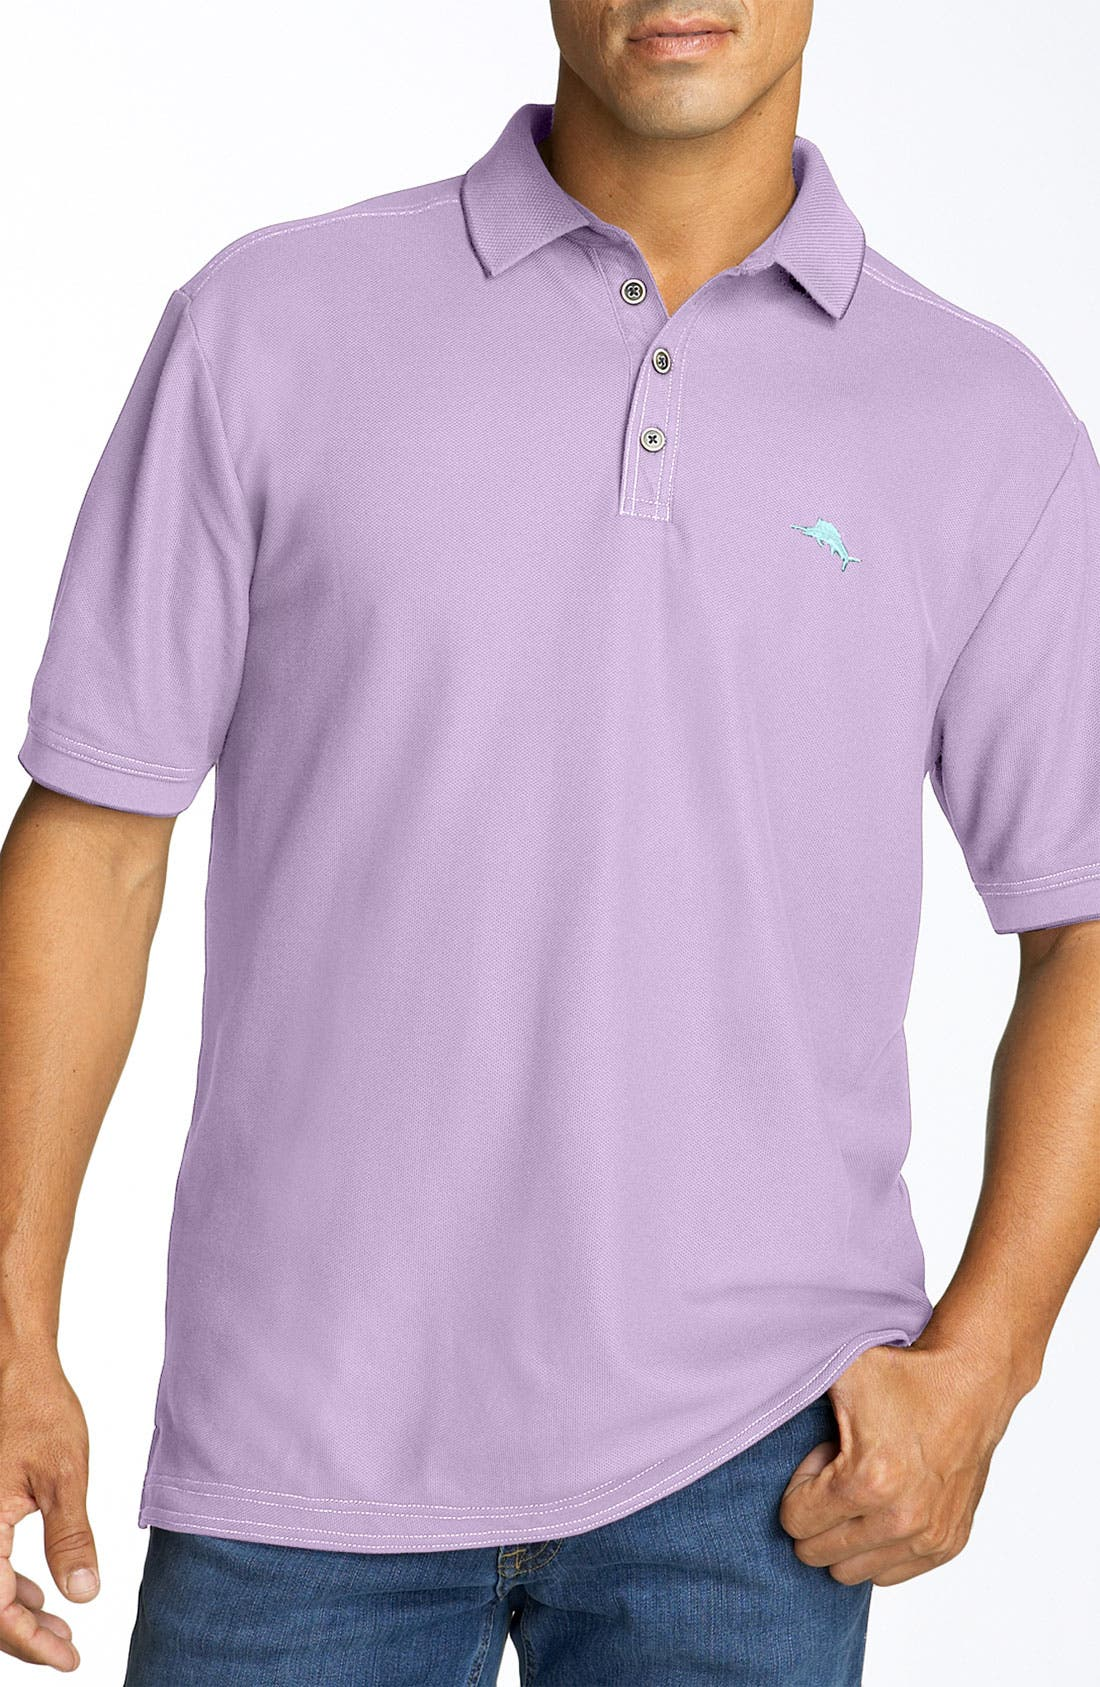 'The Emfielder' Original Fit Piqué Polo,                             Main thumbnail 15, color,